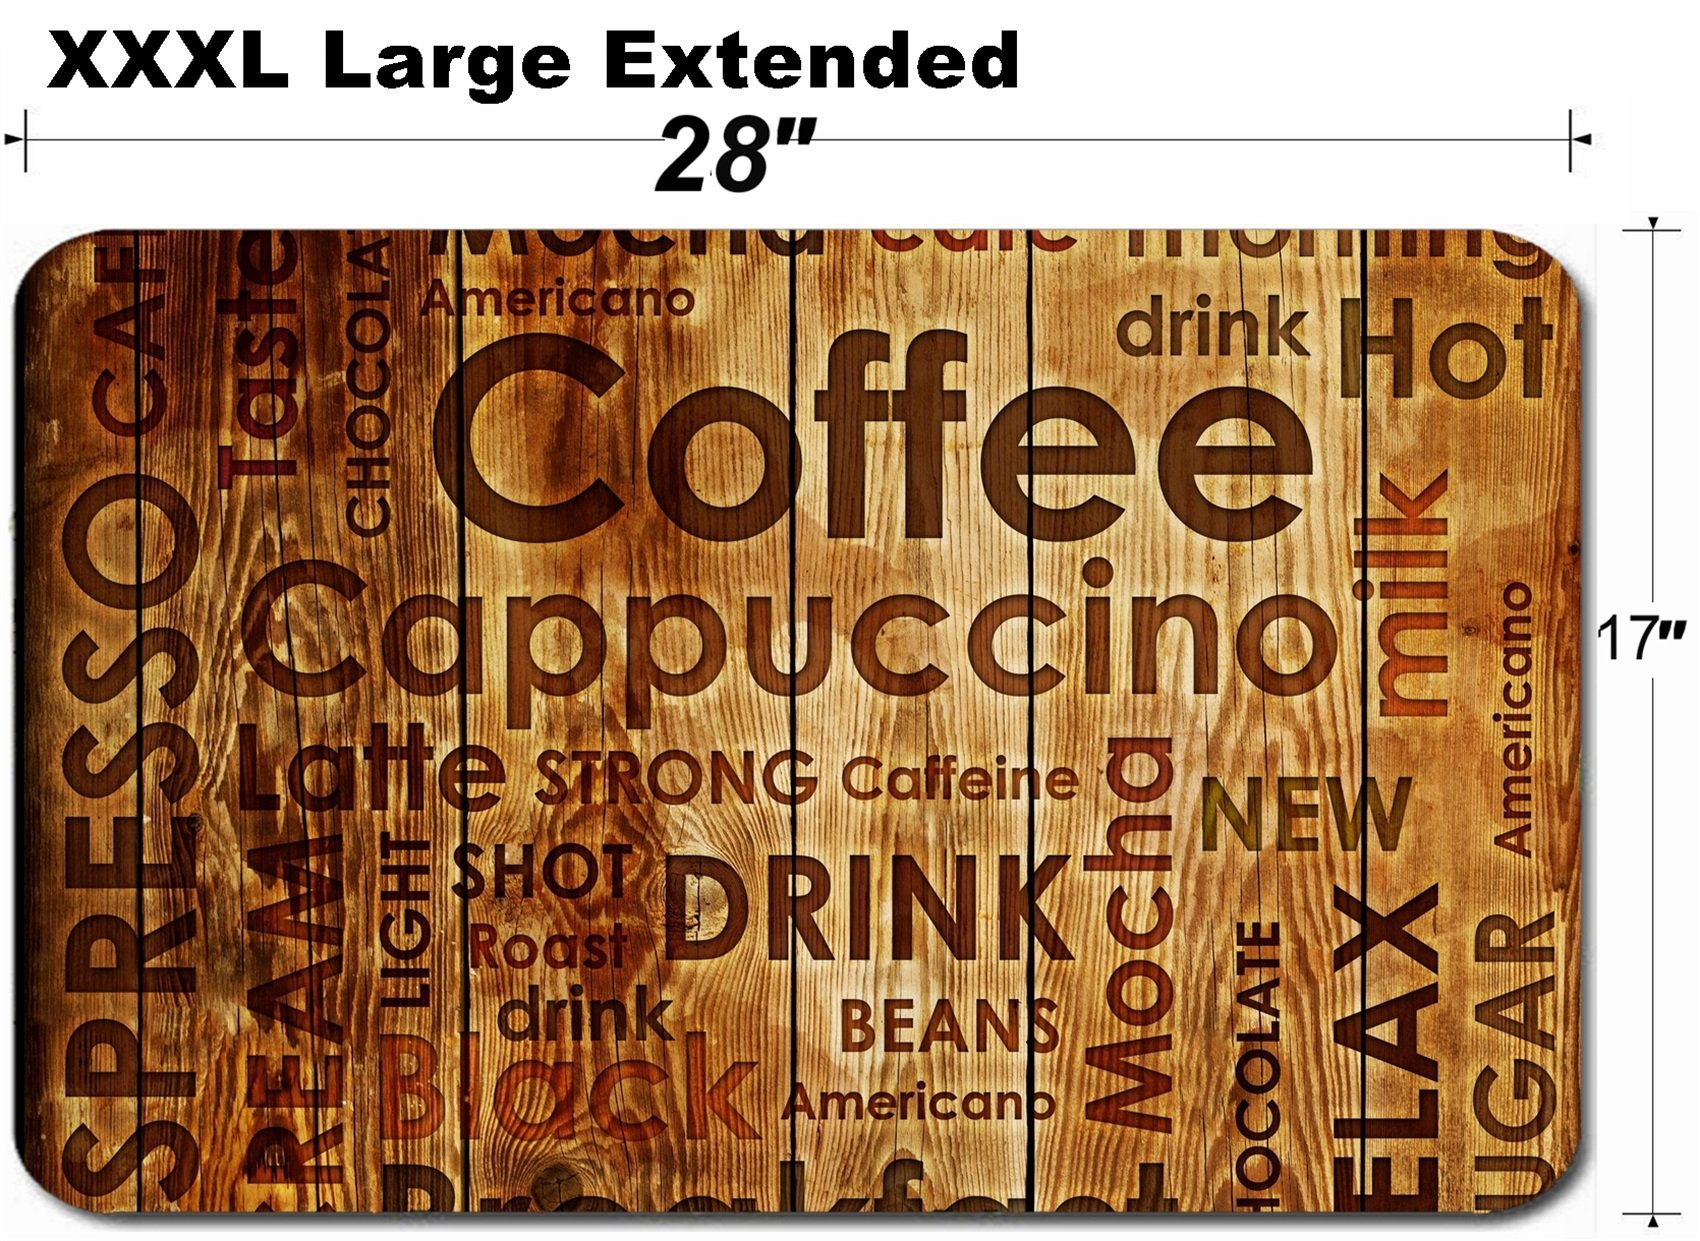 MSD Large Table Mat Non-Slip Natural Rubber Desk Pads Image 15092624 Sorts of Coffe on Wood Background